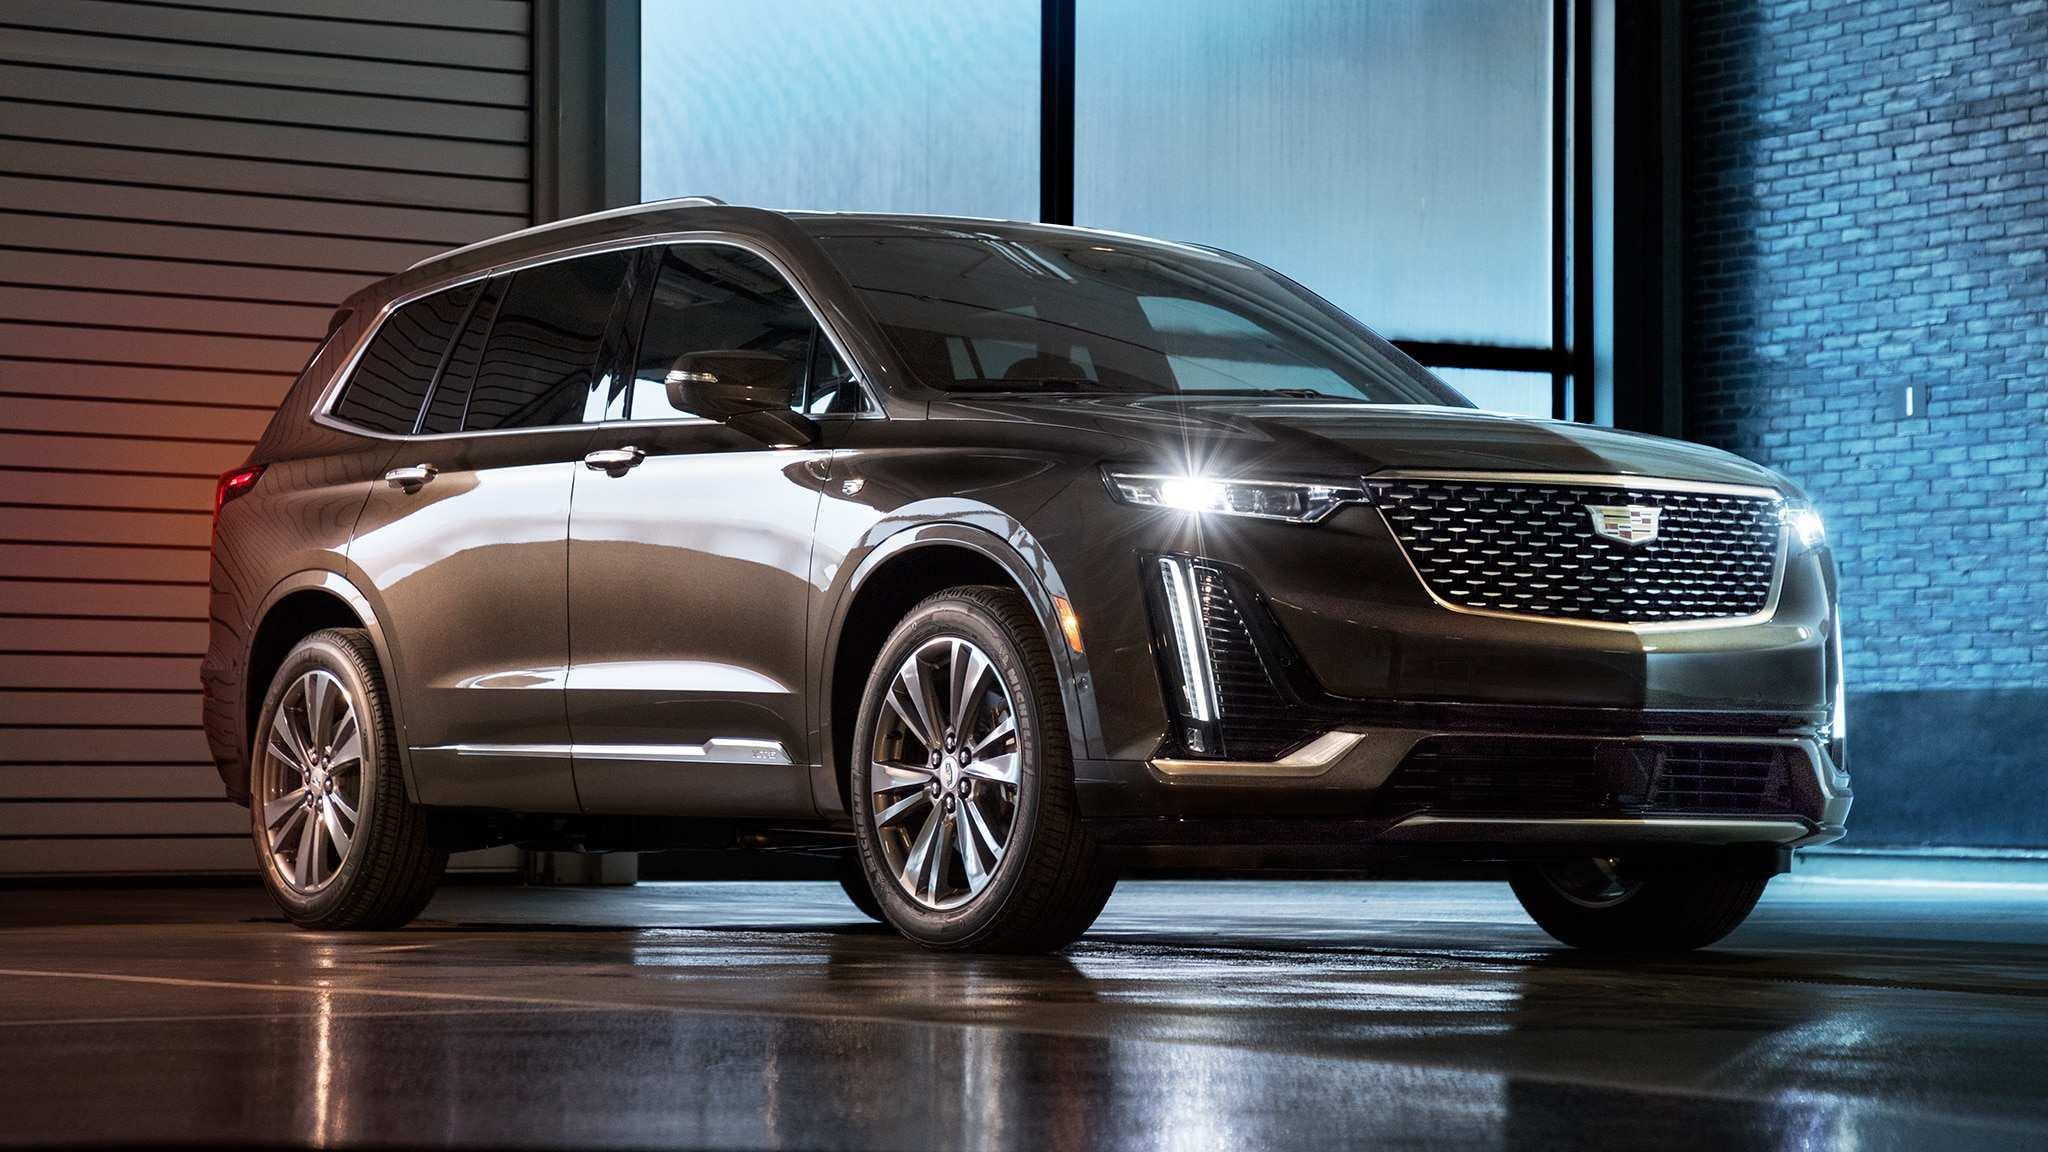 83 Best Review 2020 Lincoln Aviator Vs Cadillac Xt6 Interior by 2020 Lincoln Aviator Vs Cadillac Xt6